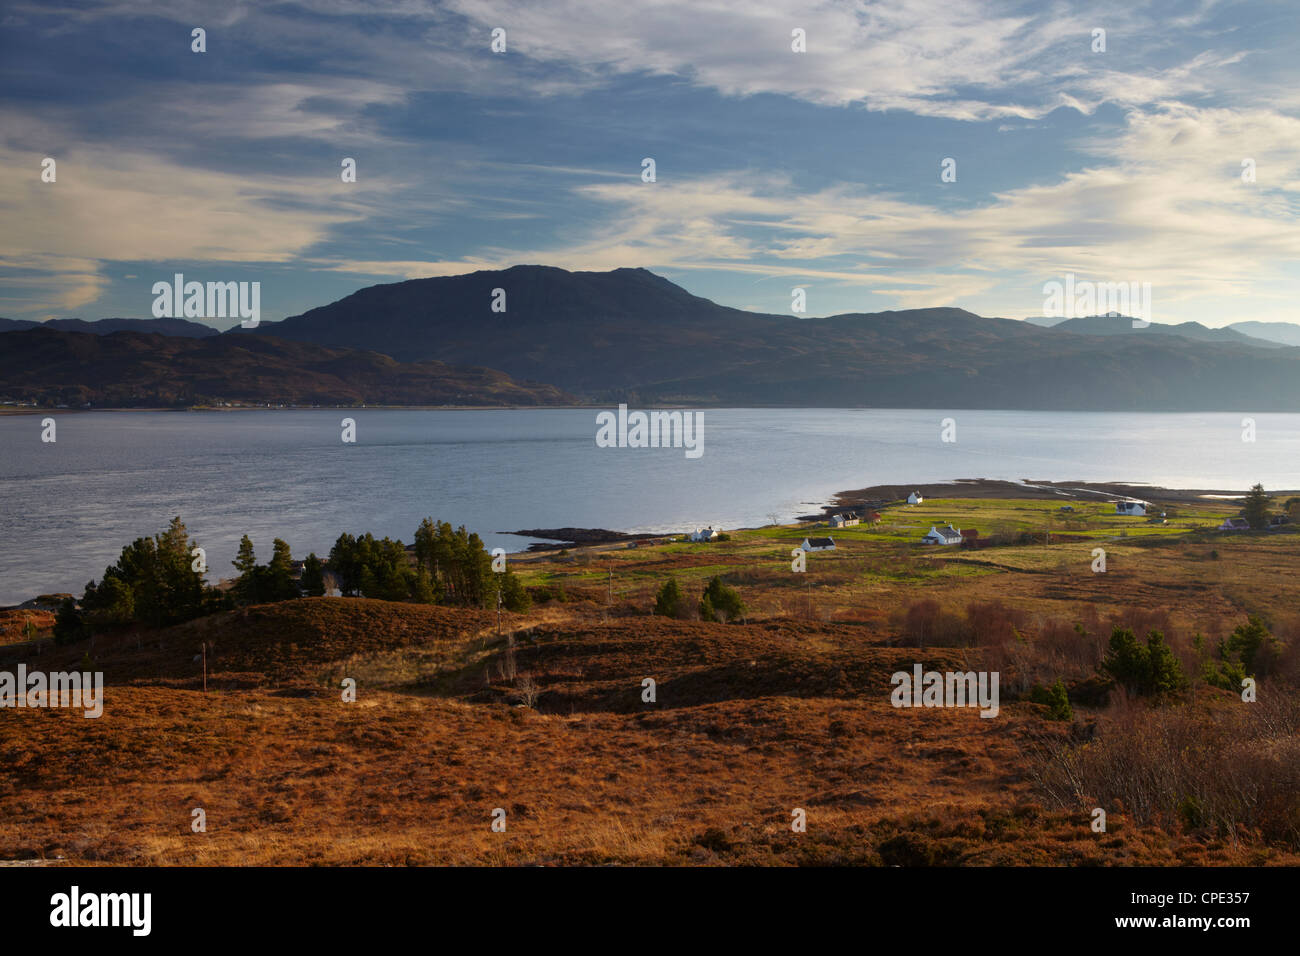 A view across the Sound of Sleat towards the Scottish mainland from Kylerhea, Isle of Skye, Inner Hebrides, Scotland, - Stock Image